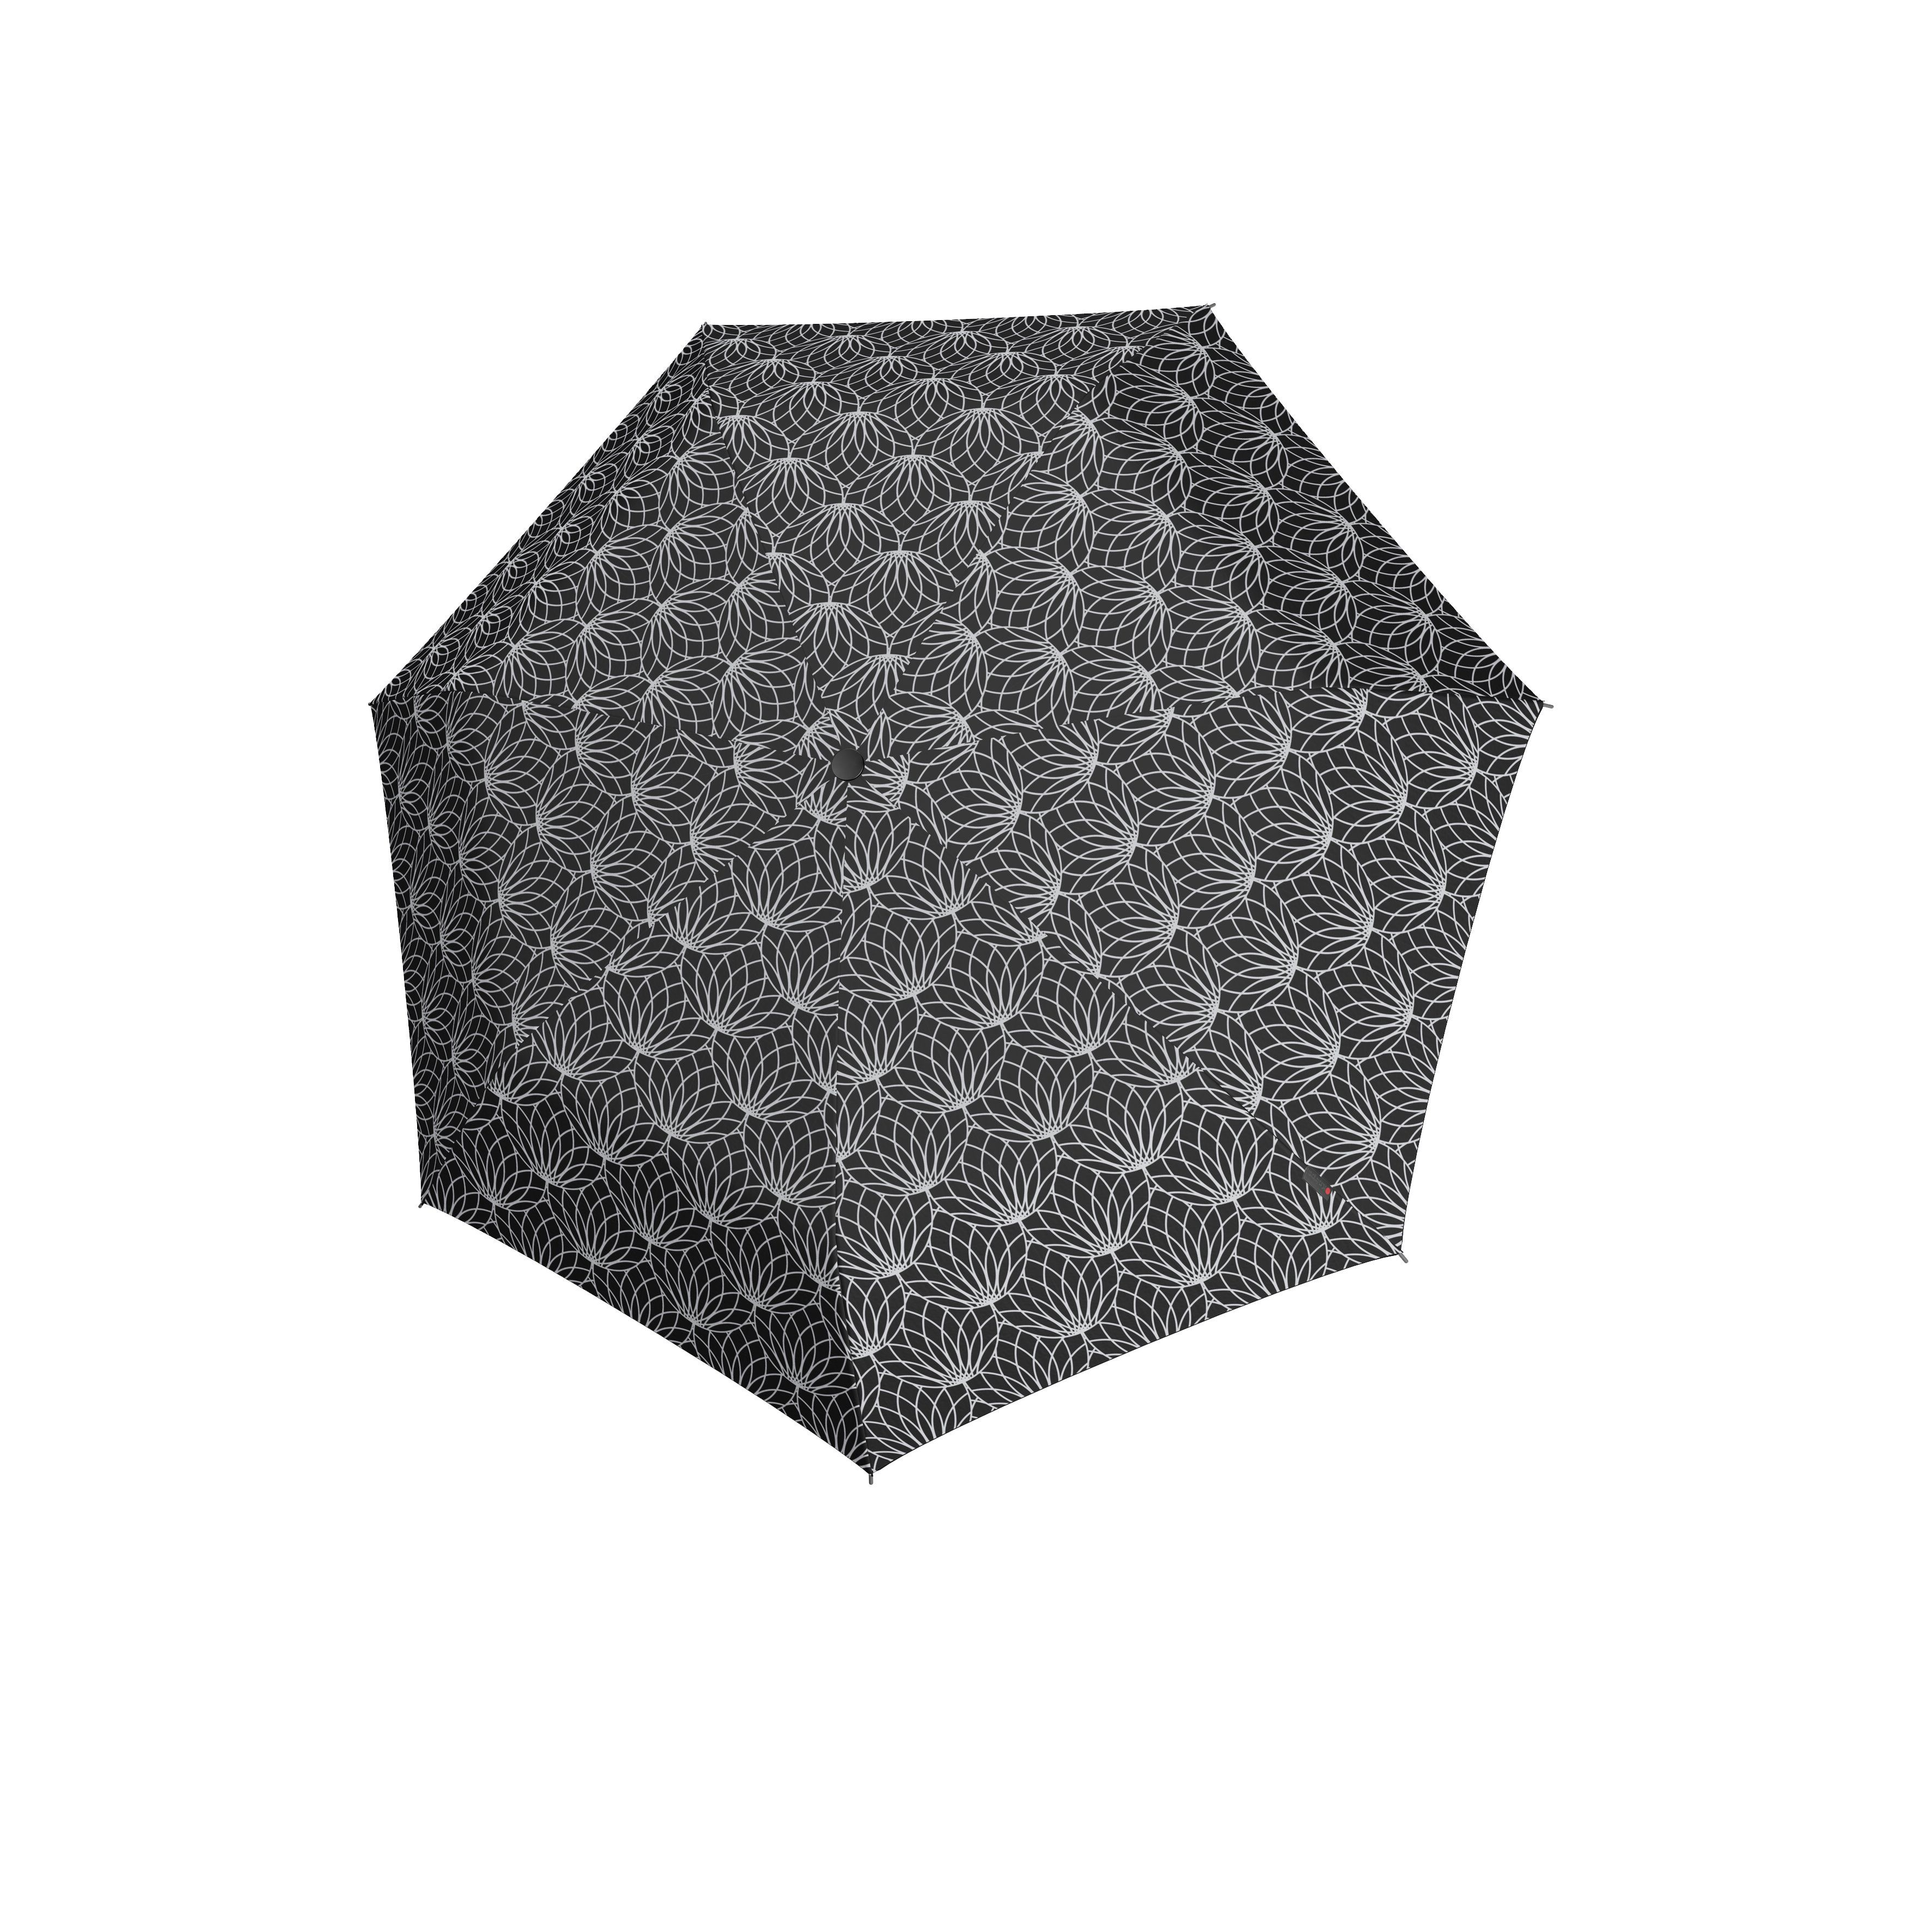 Knirps Umbrella Knirps X1 renature black ecorepel with UV Protection